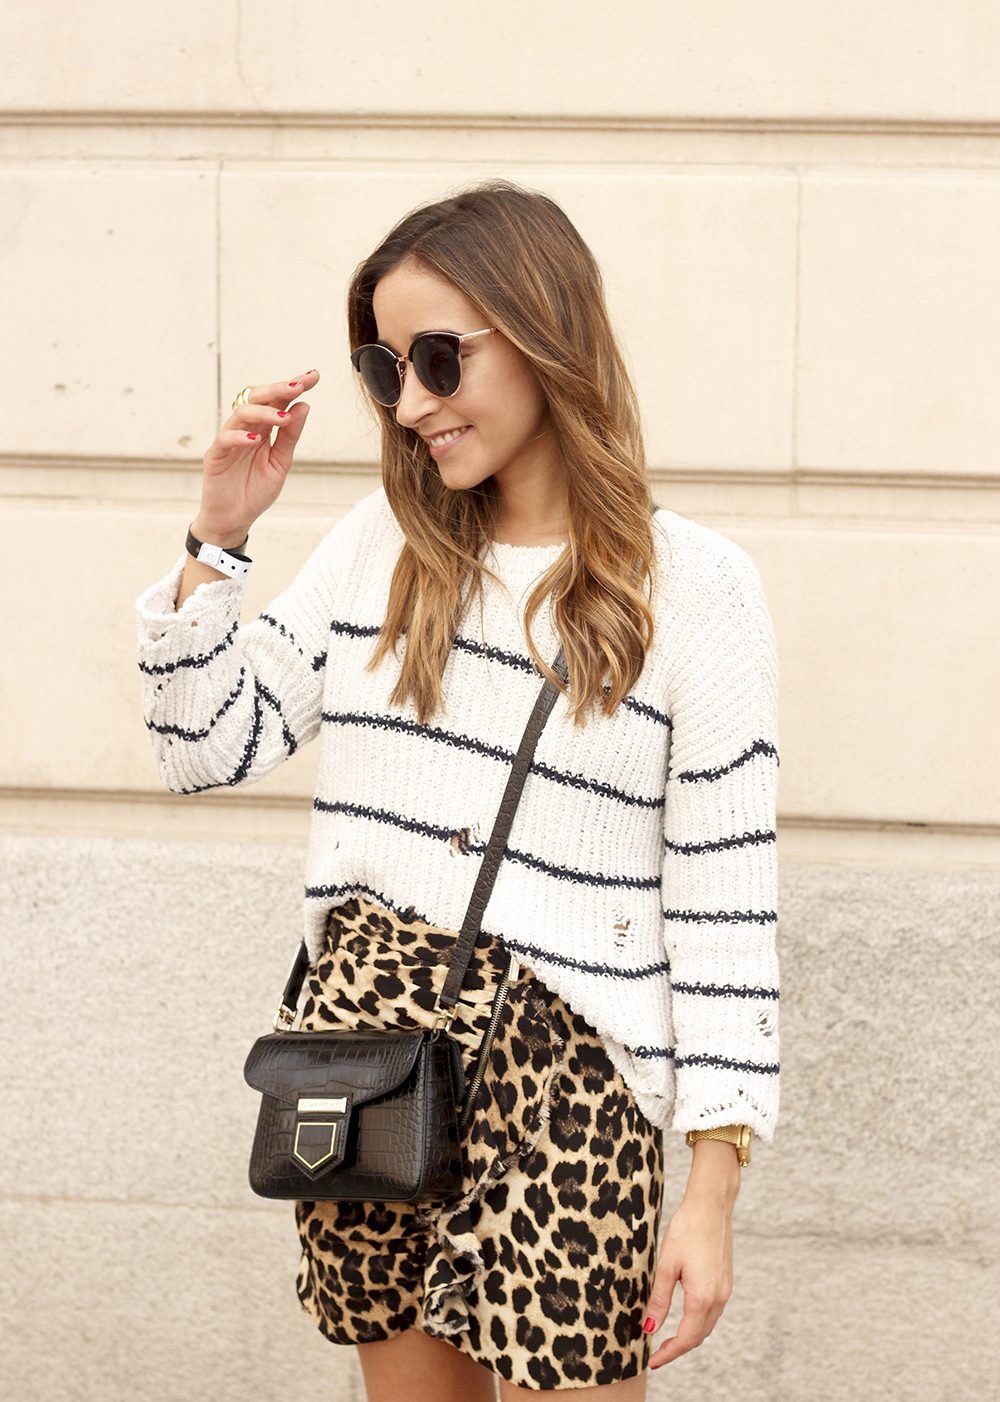 leopard printed skirt striped sweater givenchy bag outfit fashion style trend12